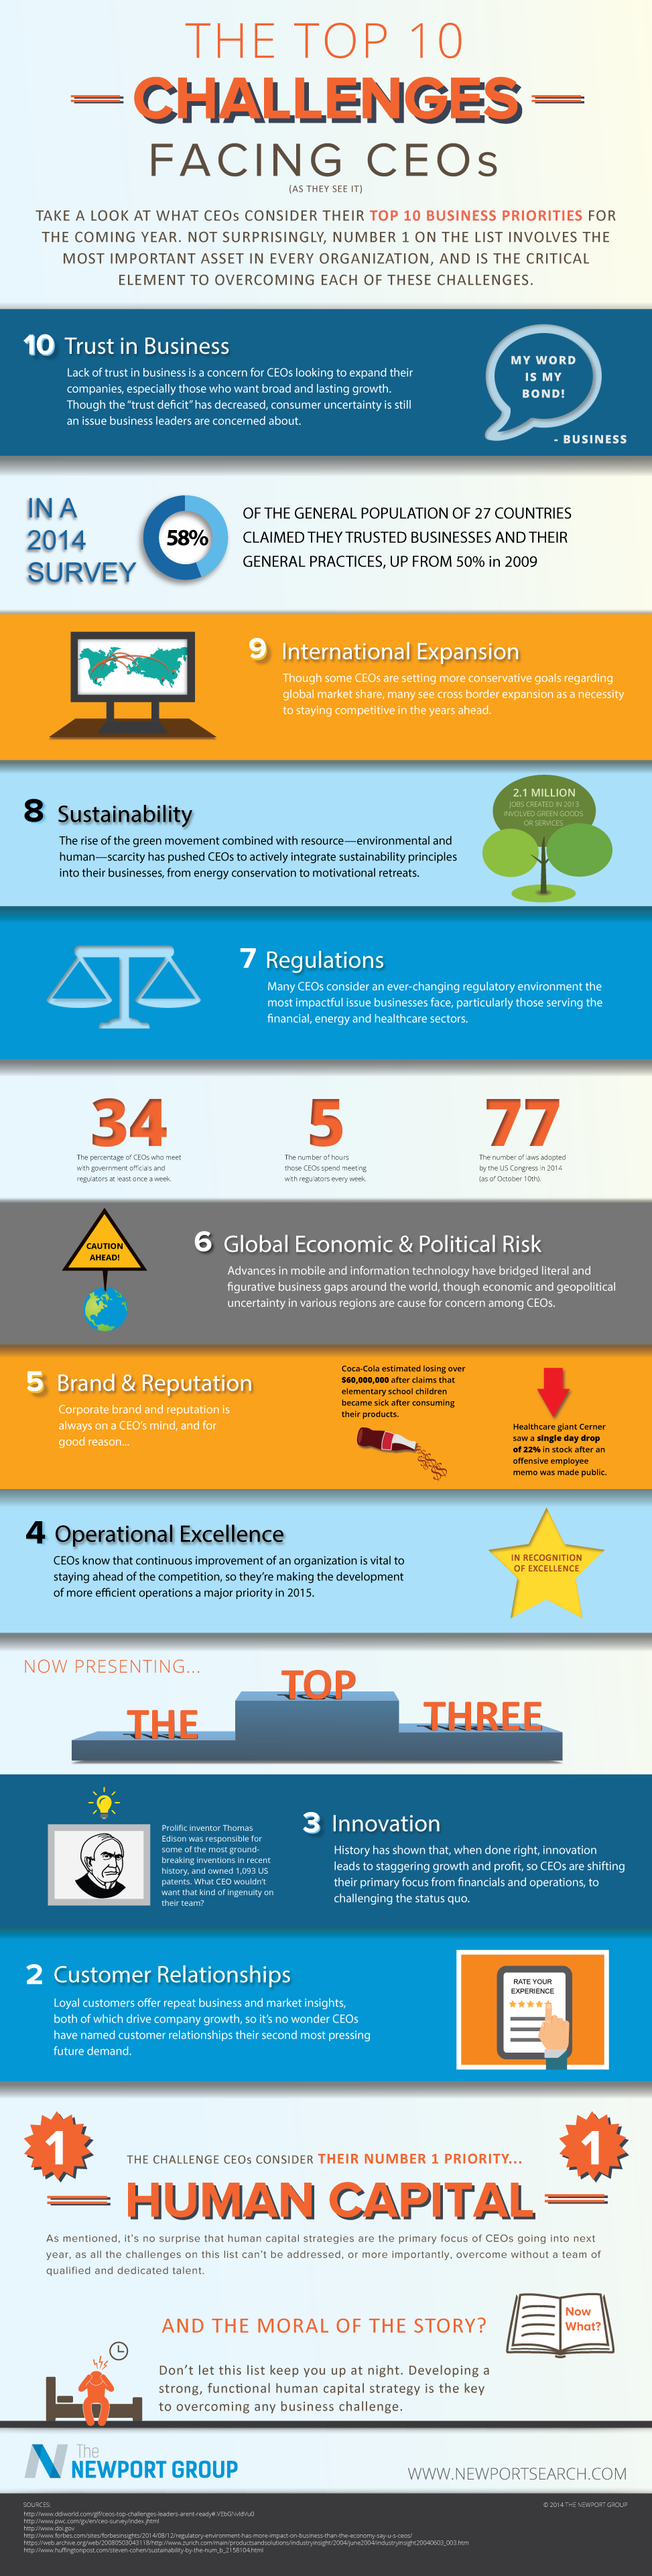 newport-group-top-10-ceo-challenges-infographic